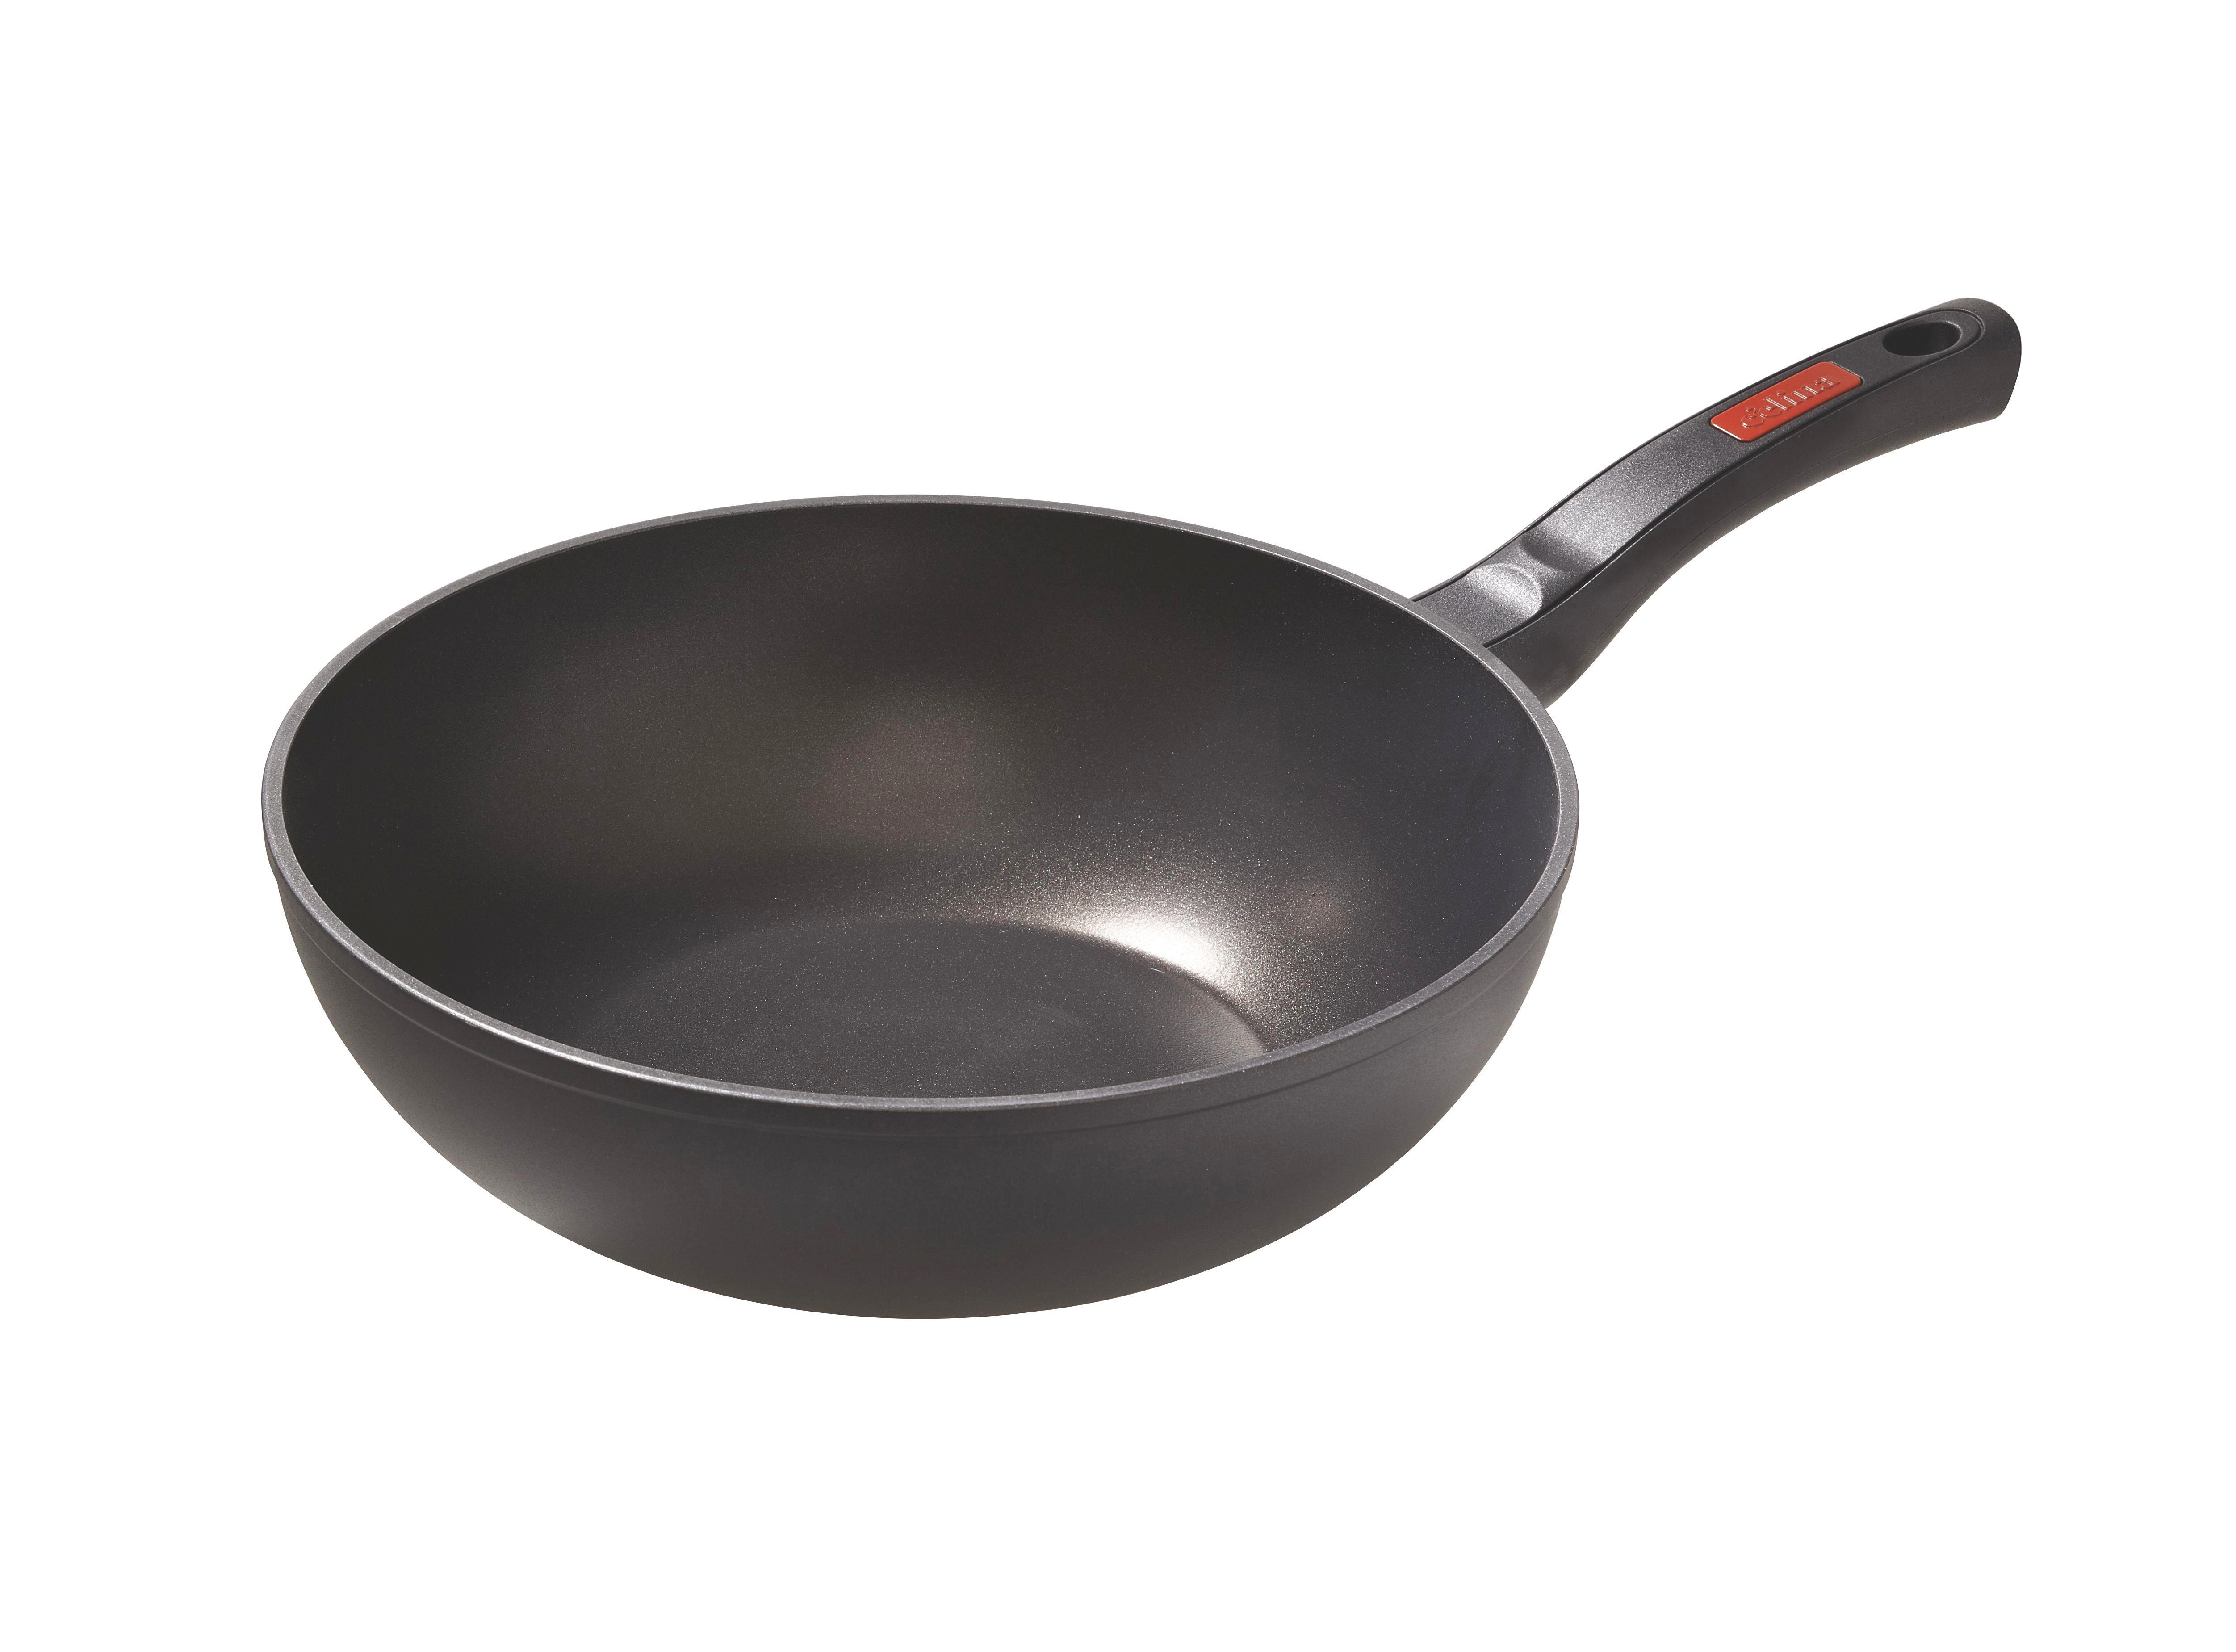 WOK - svart, Basics, metall (28cm) - HOMEWARE